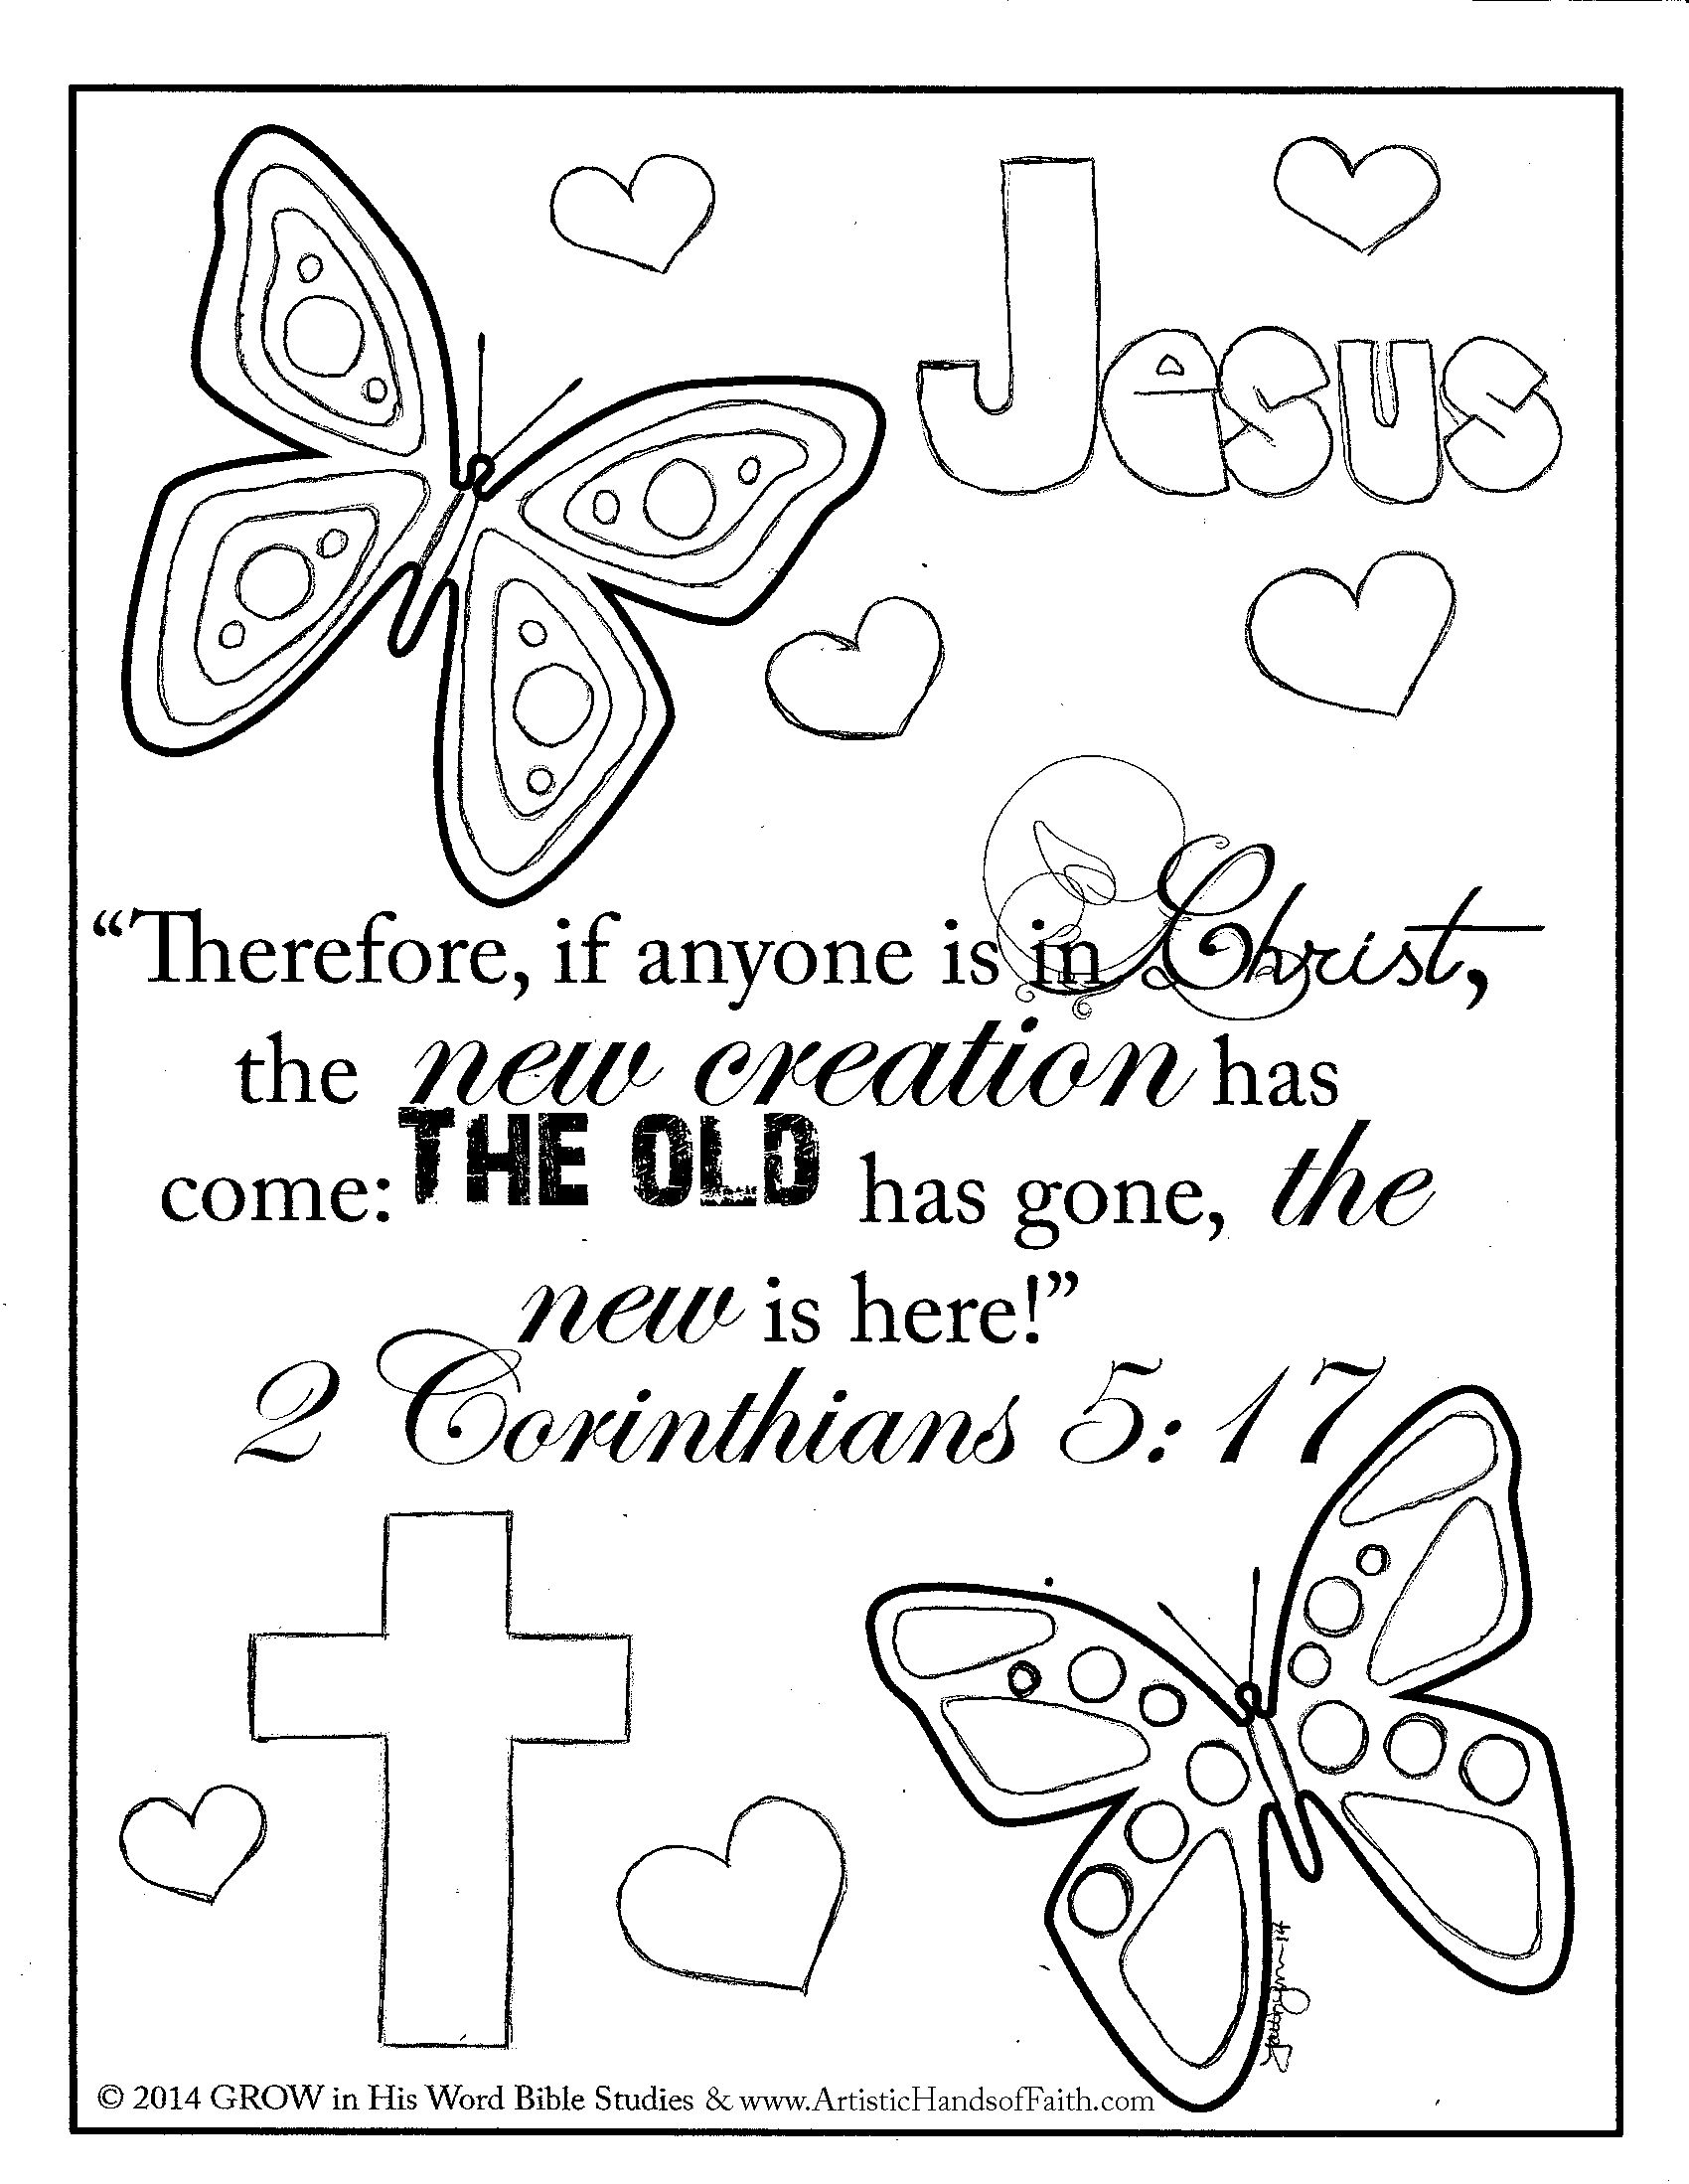 Click Here To Download And Print The Coloring Page With 2